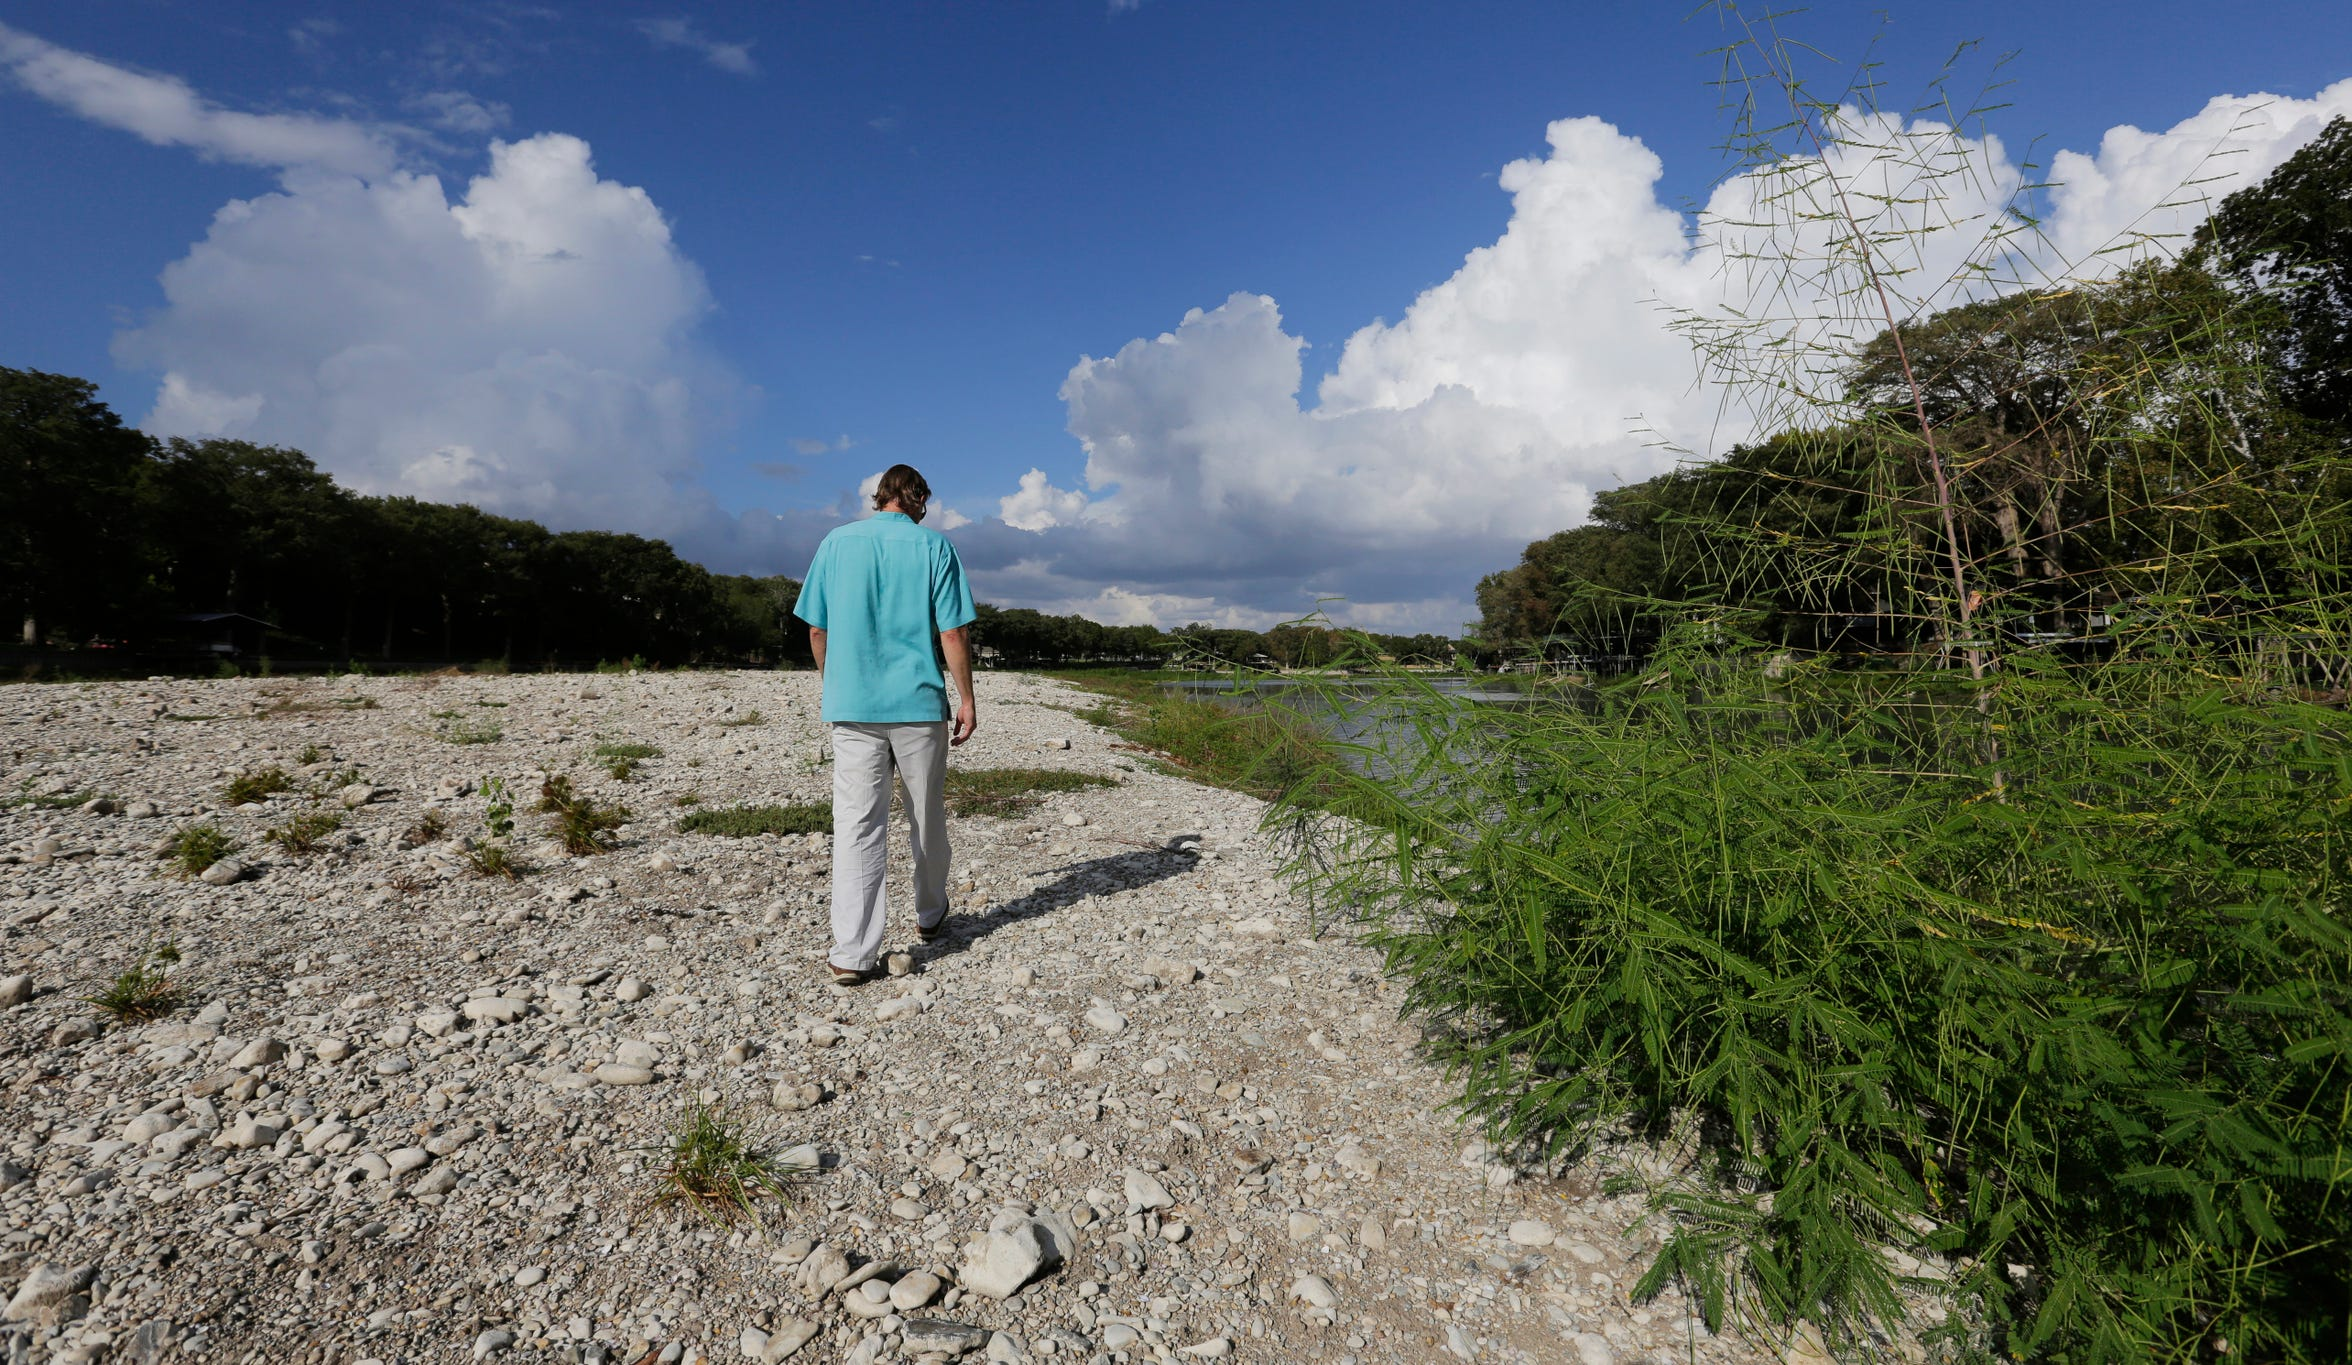 Hunter Croan walks along a dried-up section of Lake Dunlap, Sept. 30, 2019, in Lake Dunlap, Texas. Croan is one of many homeowners who were left high and dry, their lakeside docks now dry as the Guadalupe River retreated to its natural bed after the  the center spill gate of the lake's 91-year-old dam failed. (AP Photo/Eric Gay)